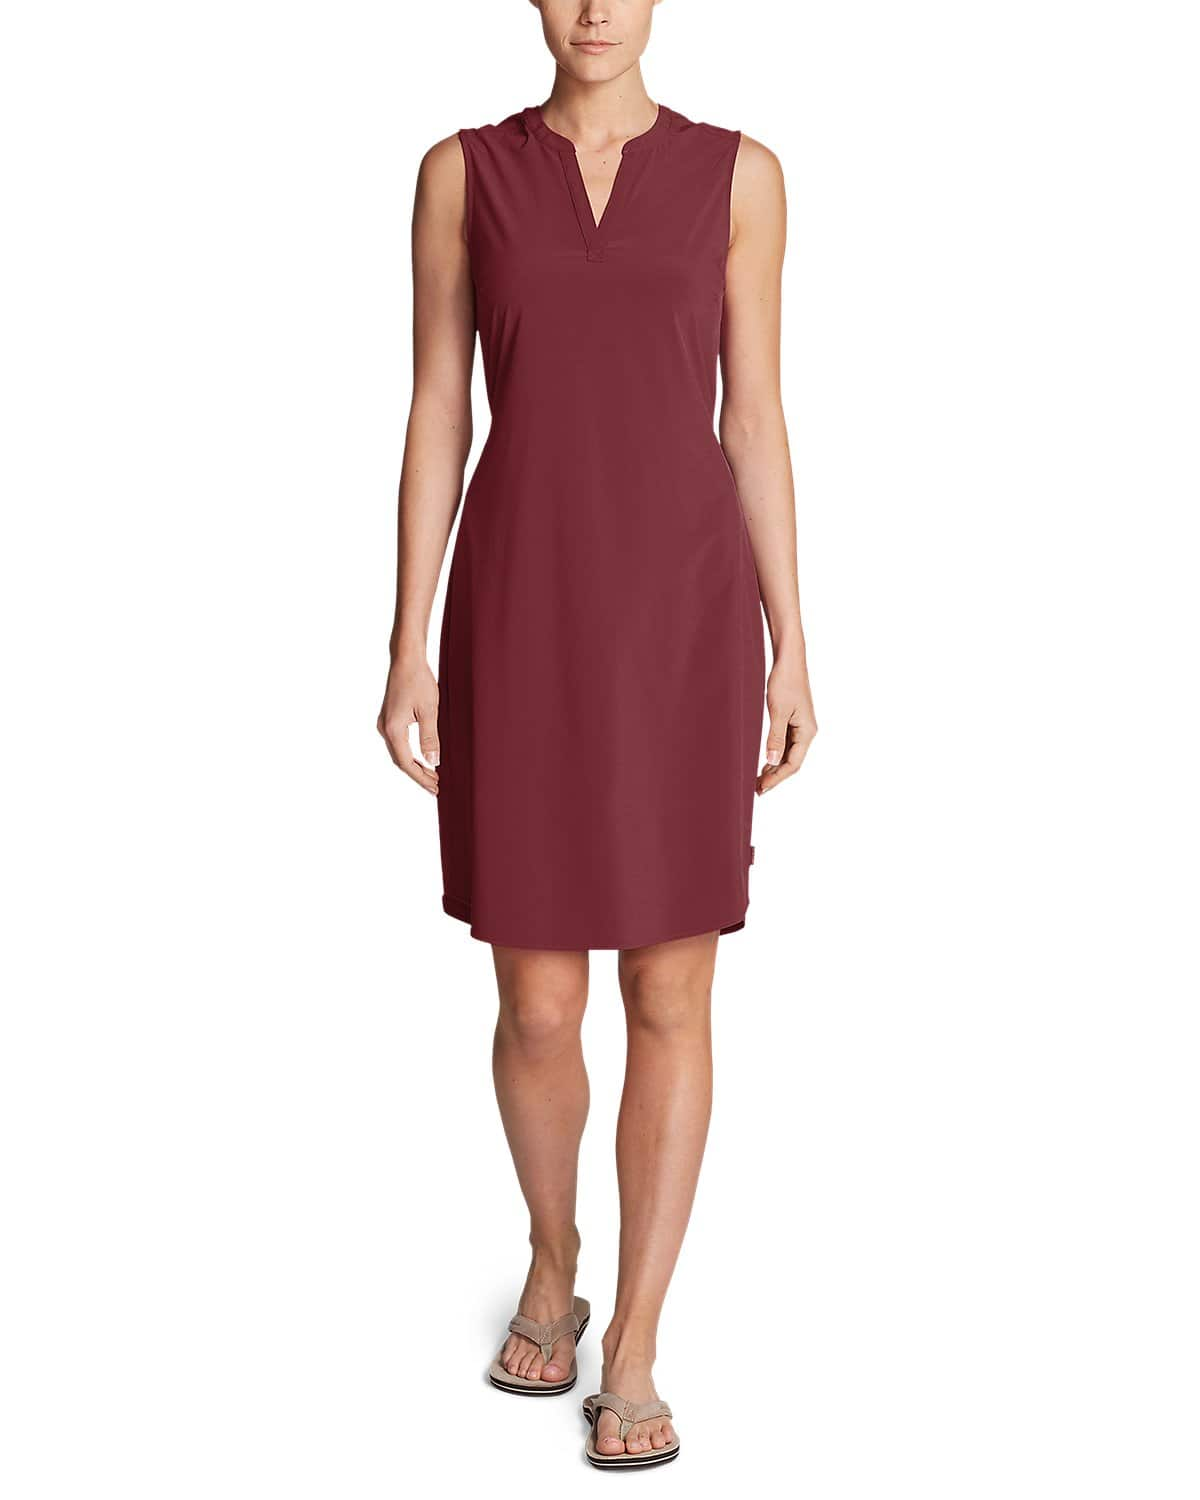 Eddie Bauer 70% Off Featured Women's Dresses from $21 + Free Shipping $35+